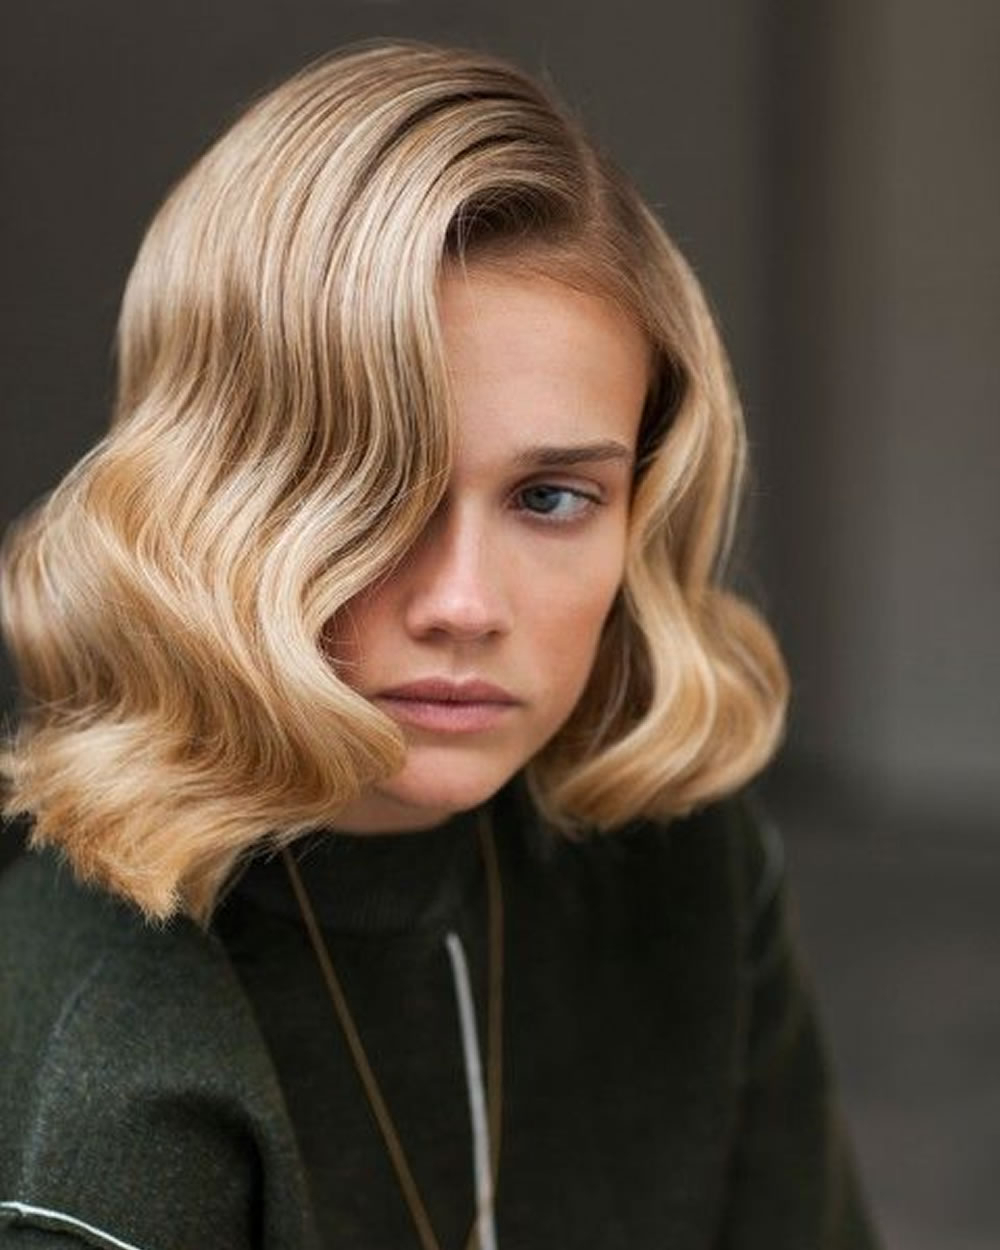 25 Modern Finger Wave Short Bob Haircut & Hairstyle Images Pertaining To Short Bob Haircuts With Waves (View 5 of 20)